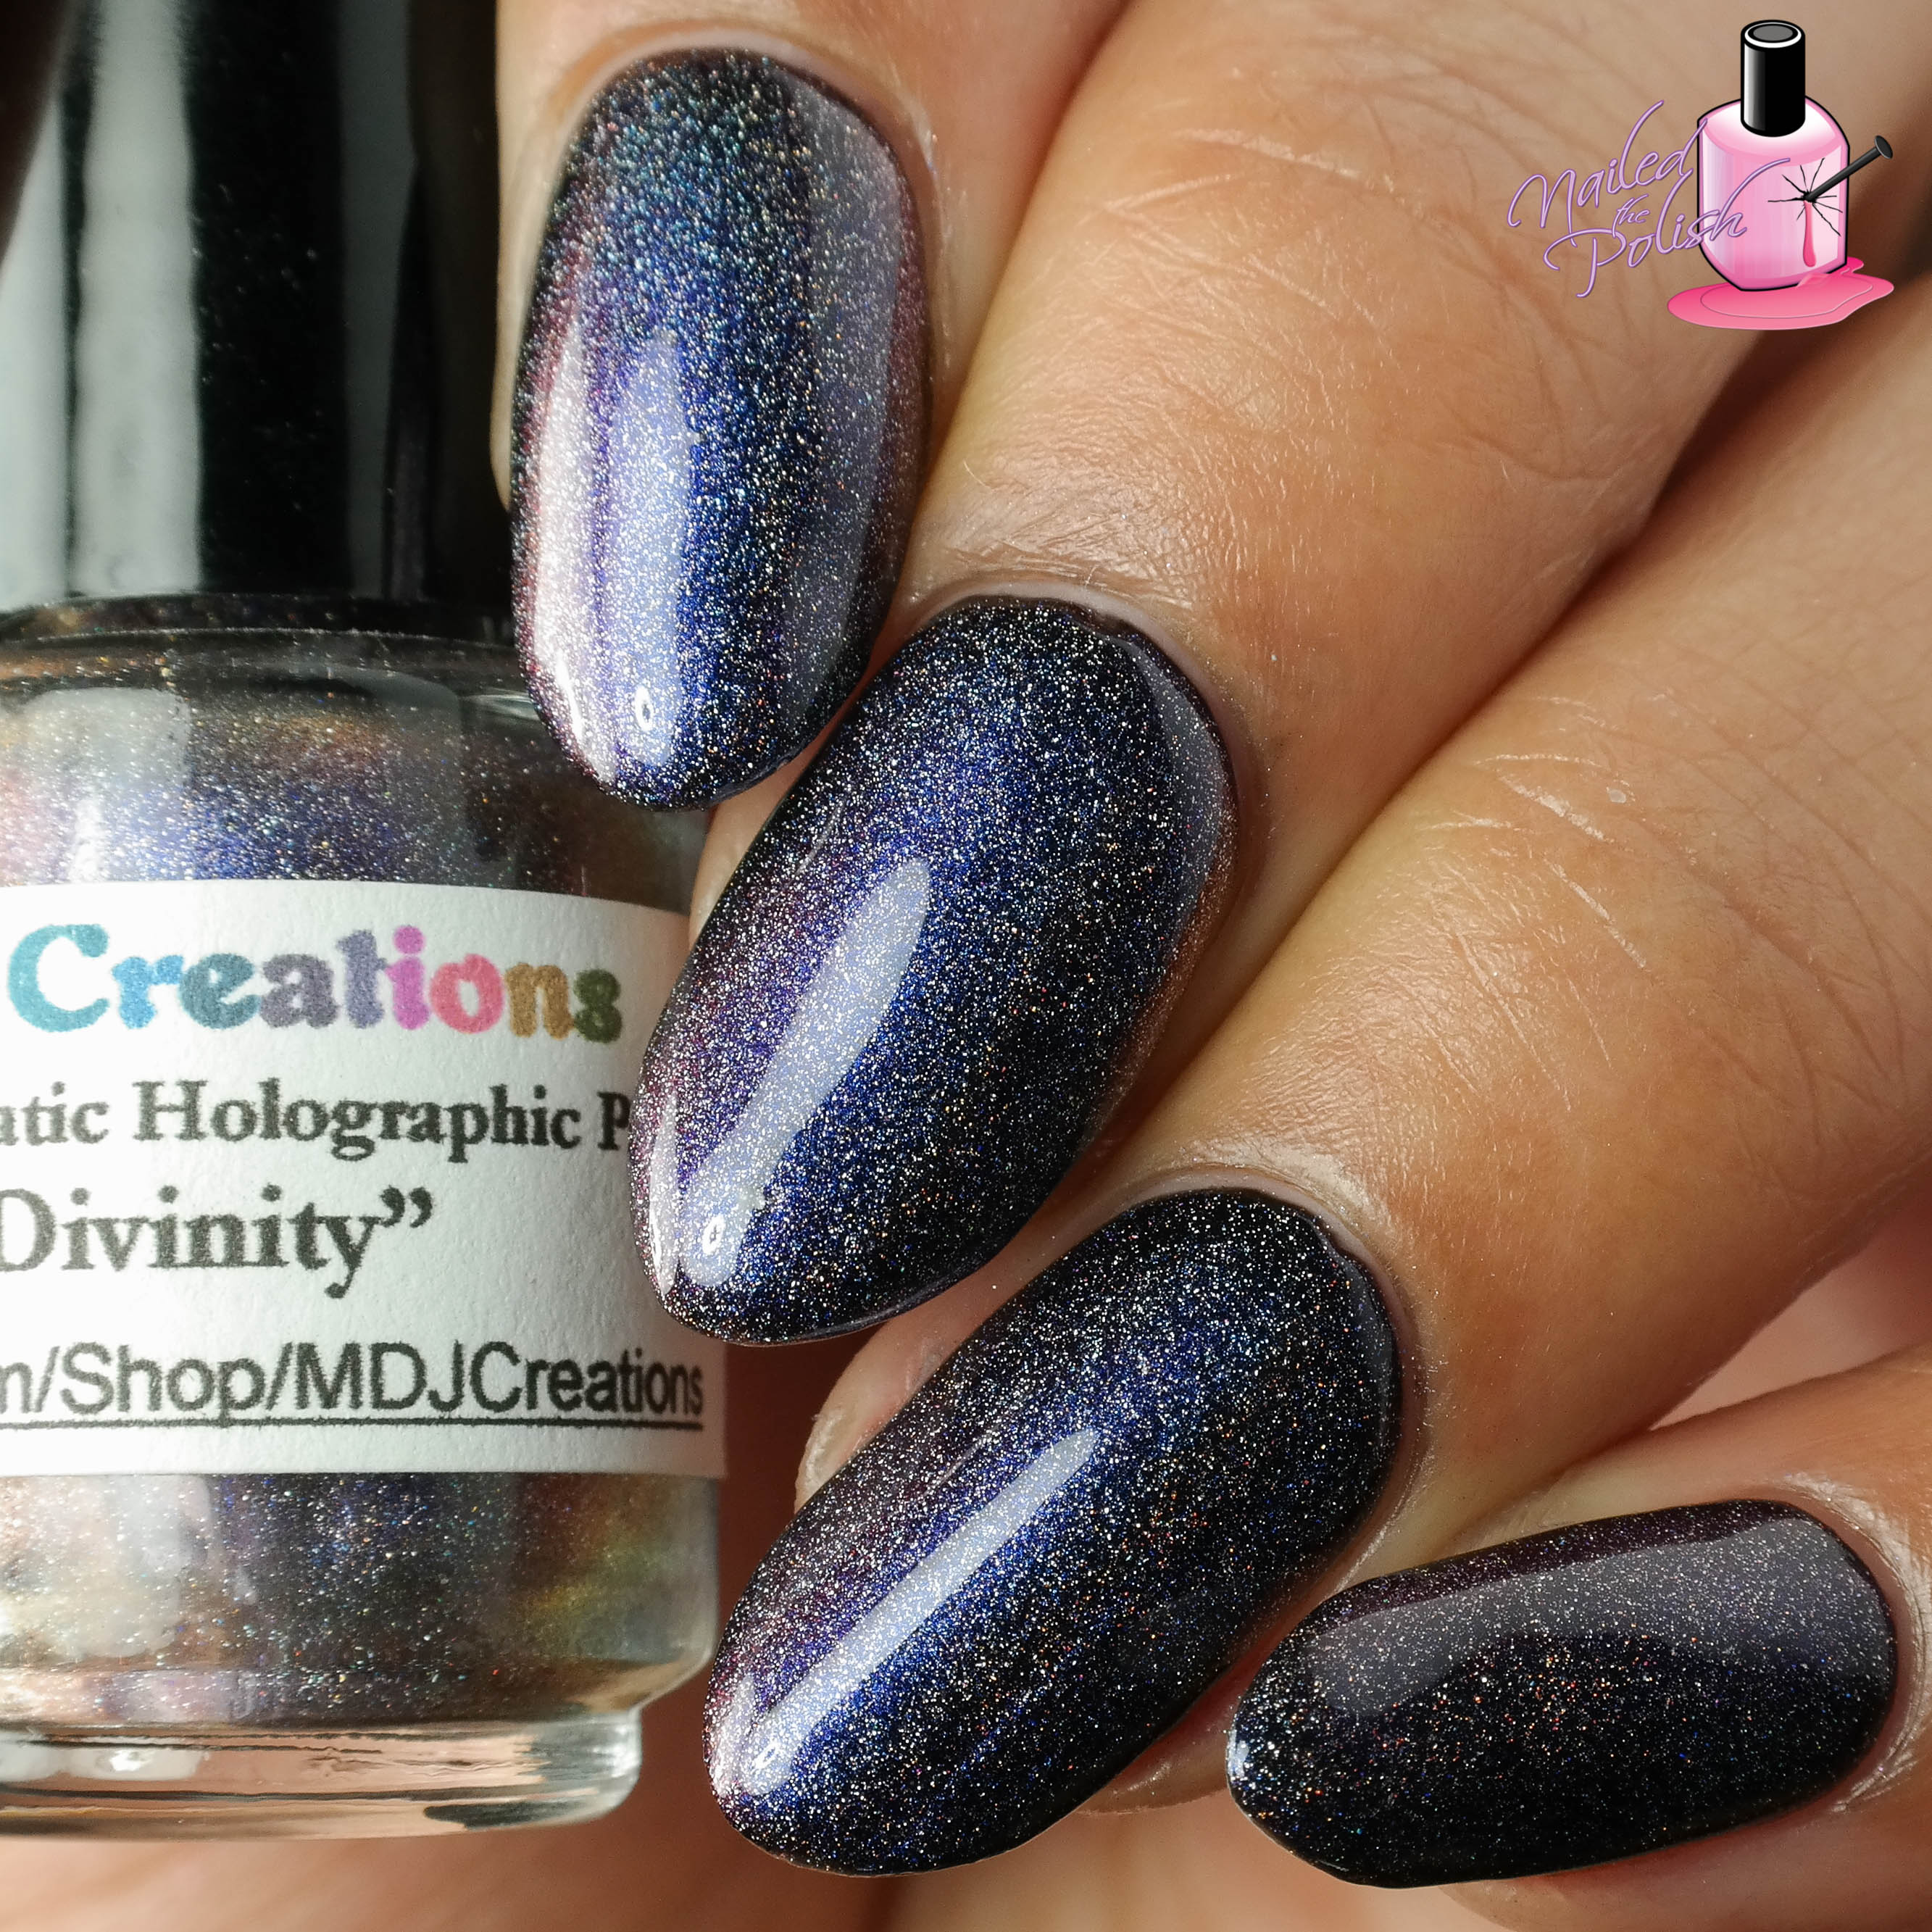 MDJ Creations Polishes | nailedthepolish